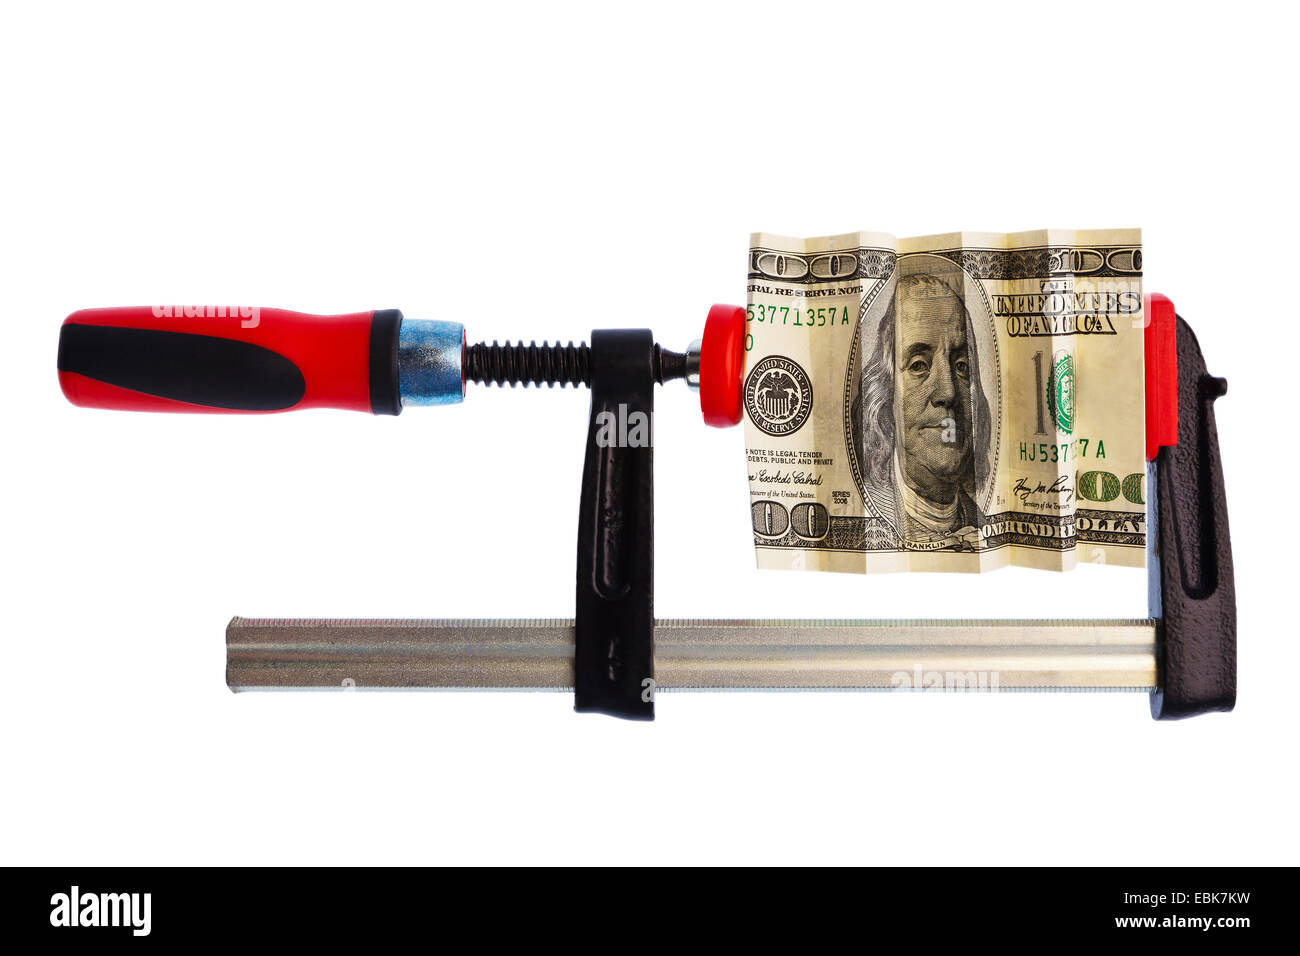 Dollar bill in a clamp, economic and financial crisis - Stock Image